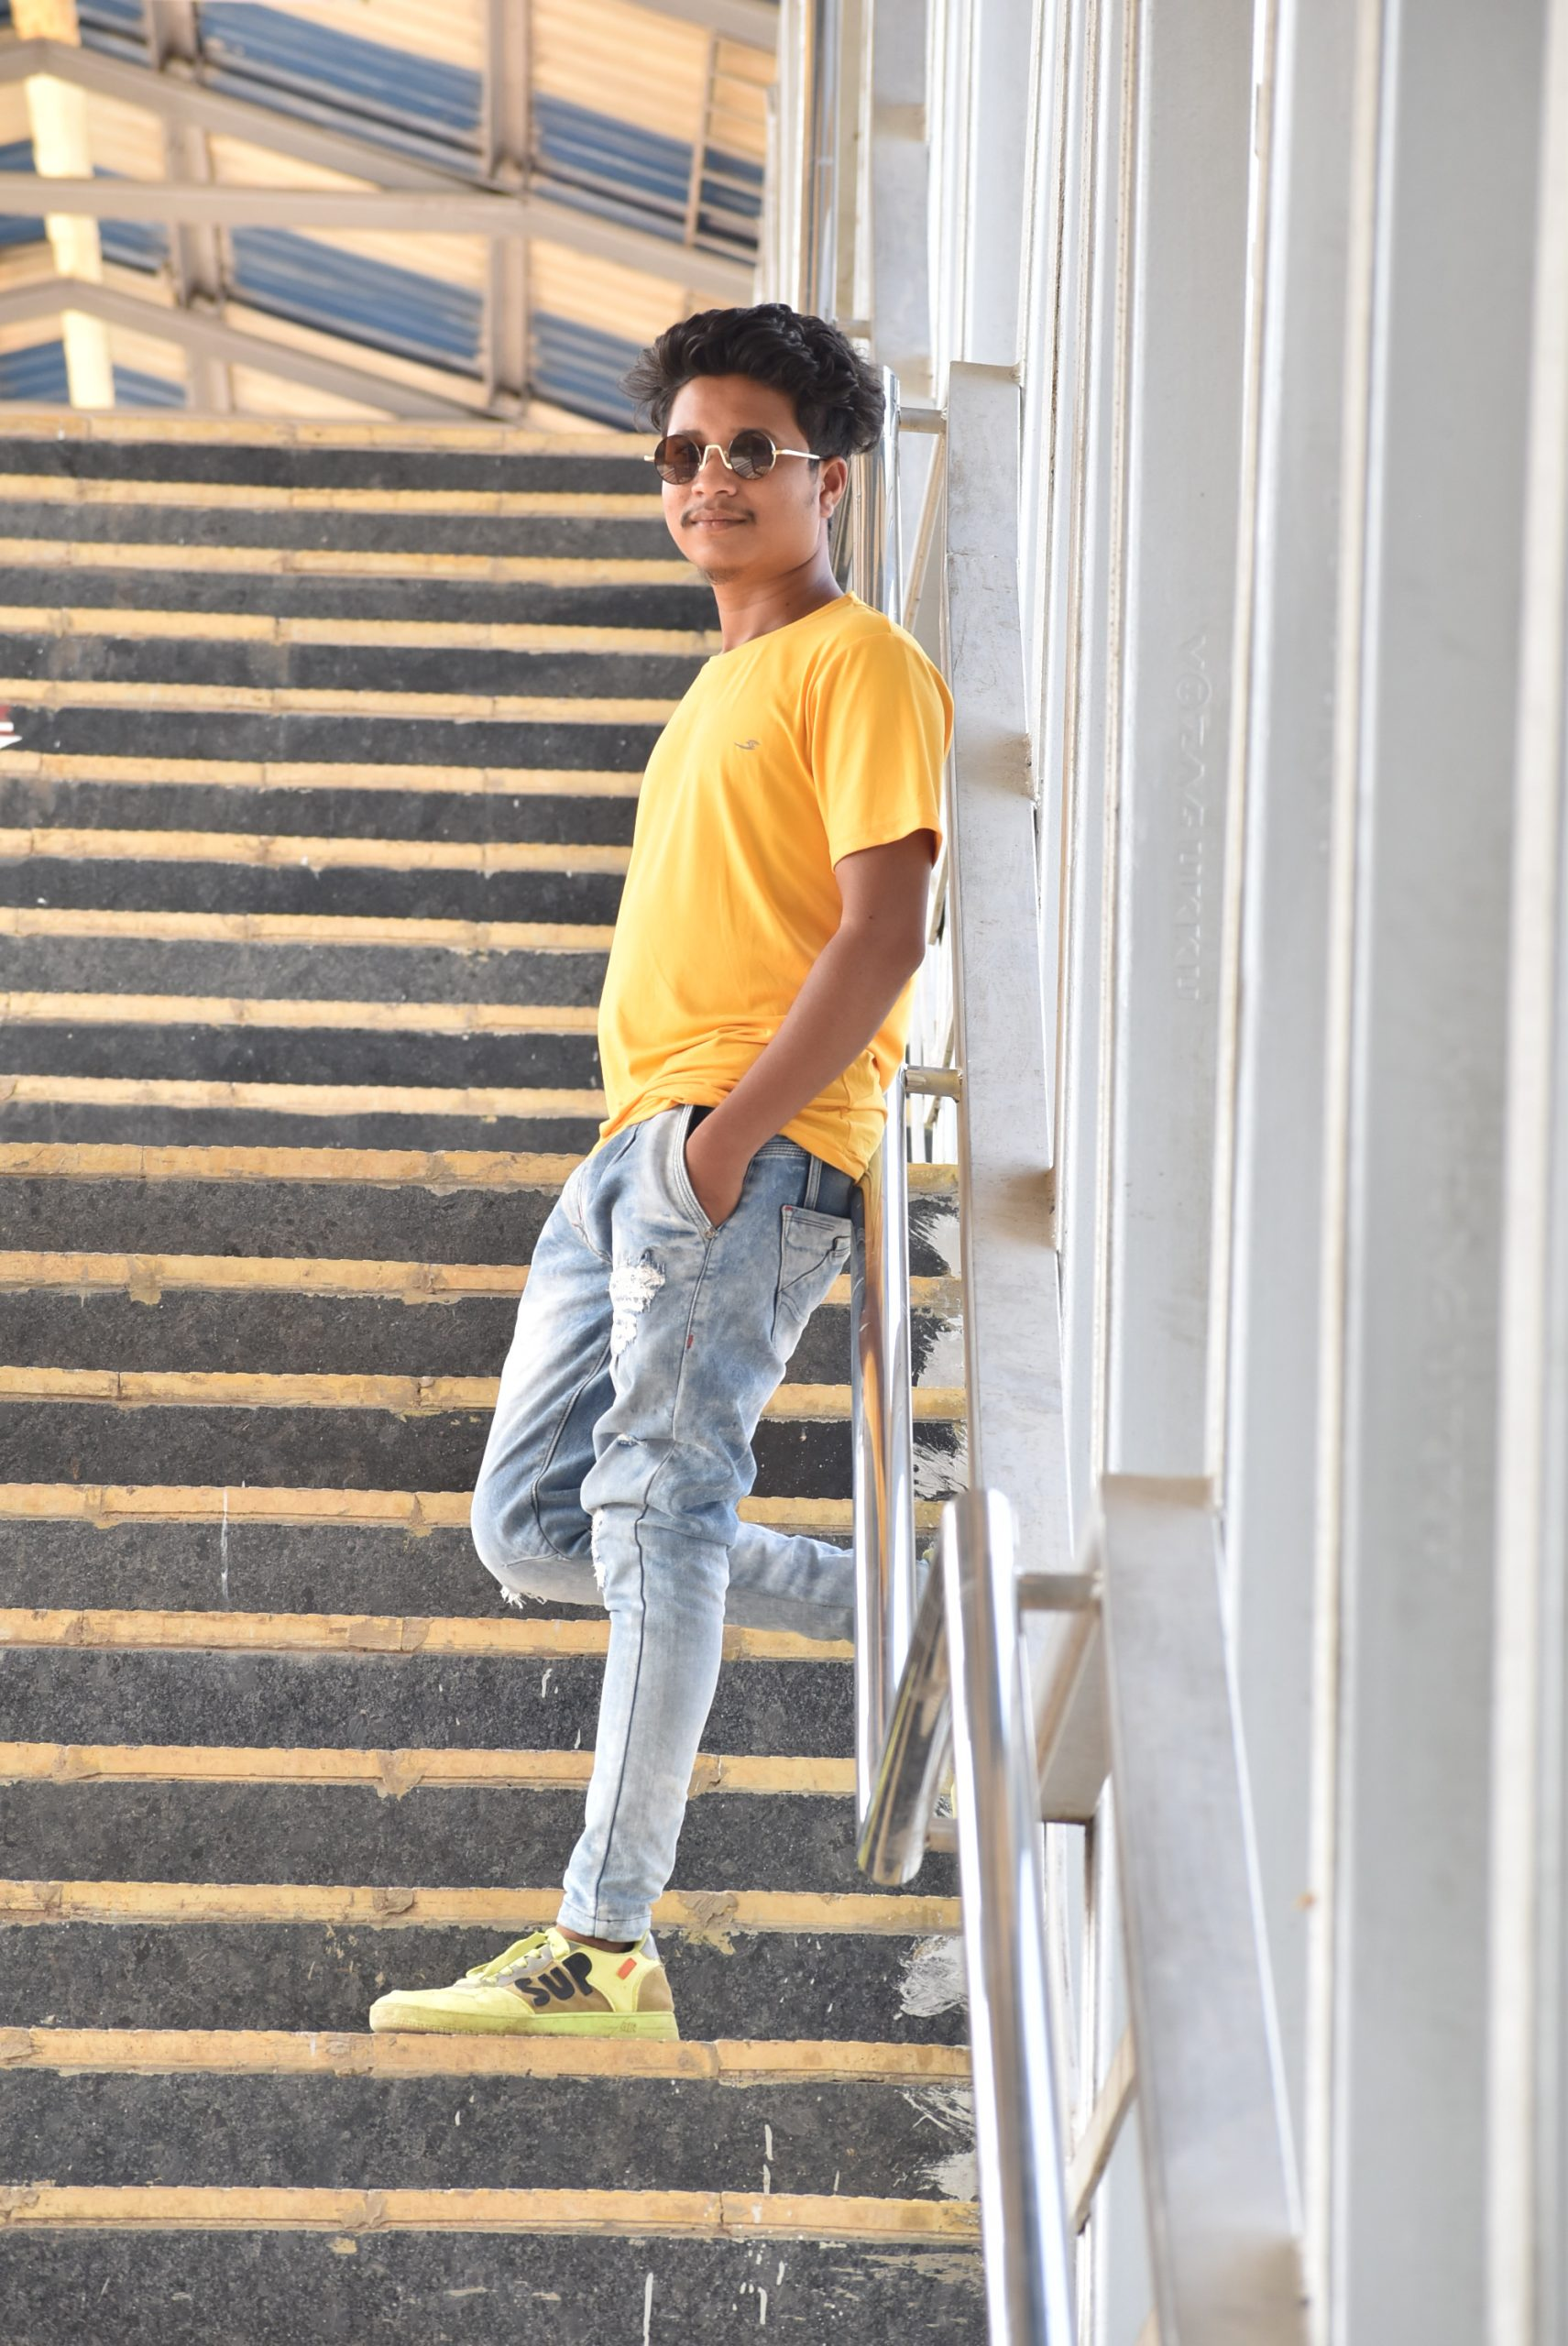 A boy standing on stairs